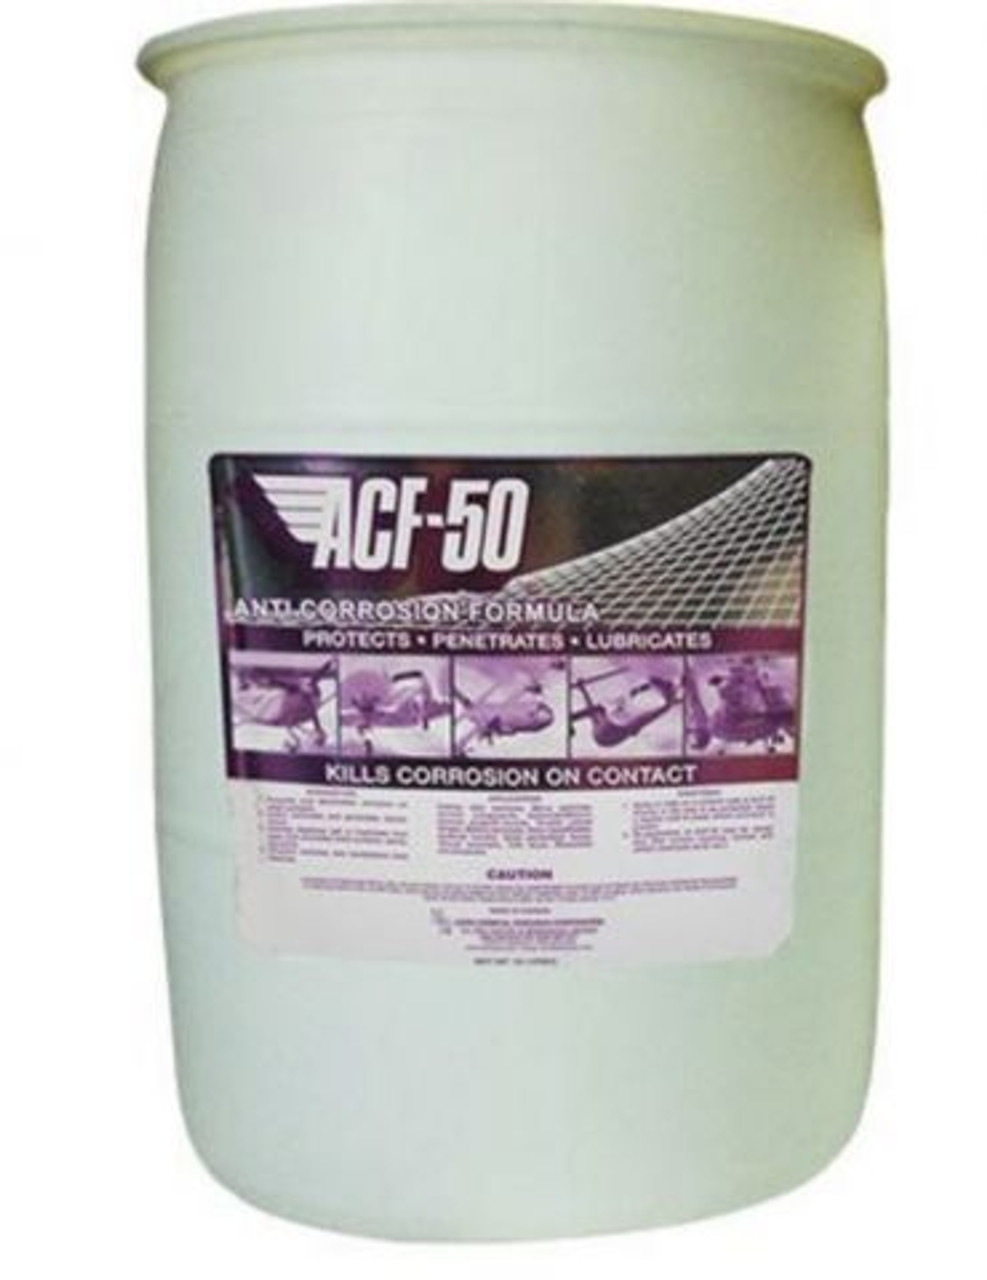 Lear Chemical Research ACF-50® Lubricant Purple 55 GL Drum Part# 10205 by Lear Chemical Lear Chemical Research ACF-50® anti-corrosion lubricant is purple in color and has 90 grams per liter VOC contents that evaporate without leaving any residues or stains. The liquid anti-corrosion lubricant has a flash point of 79.4 degrees C, specific gravity of 0.9 and a boiling point greater than 100 degrees C. This product has a kinematic viscosity of 25 centistokes at 40 degrees C. The anti-corrosion lubricant has an aromatic odor and comes in a 55 GL Drum. It has an auto-ignition temperature rating greater than 210C degrees C.